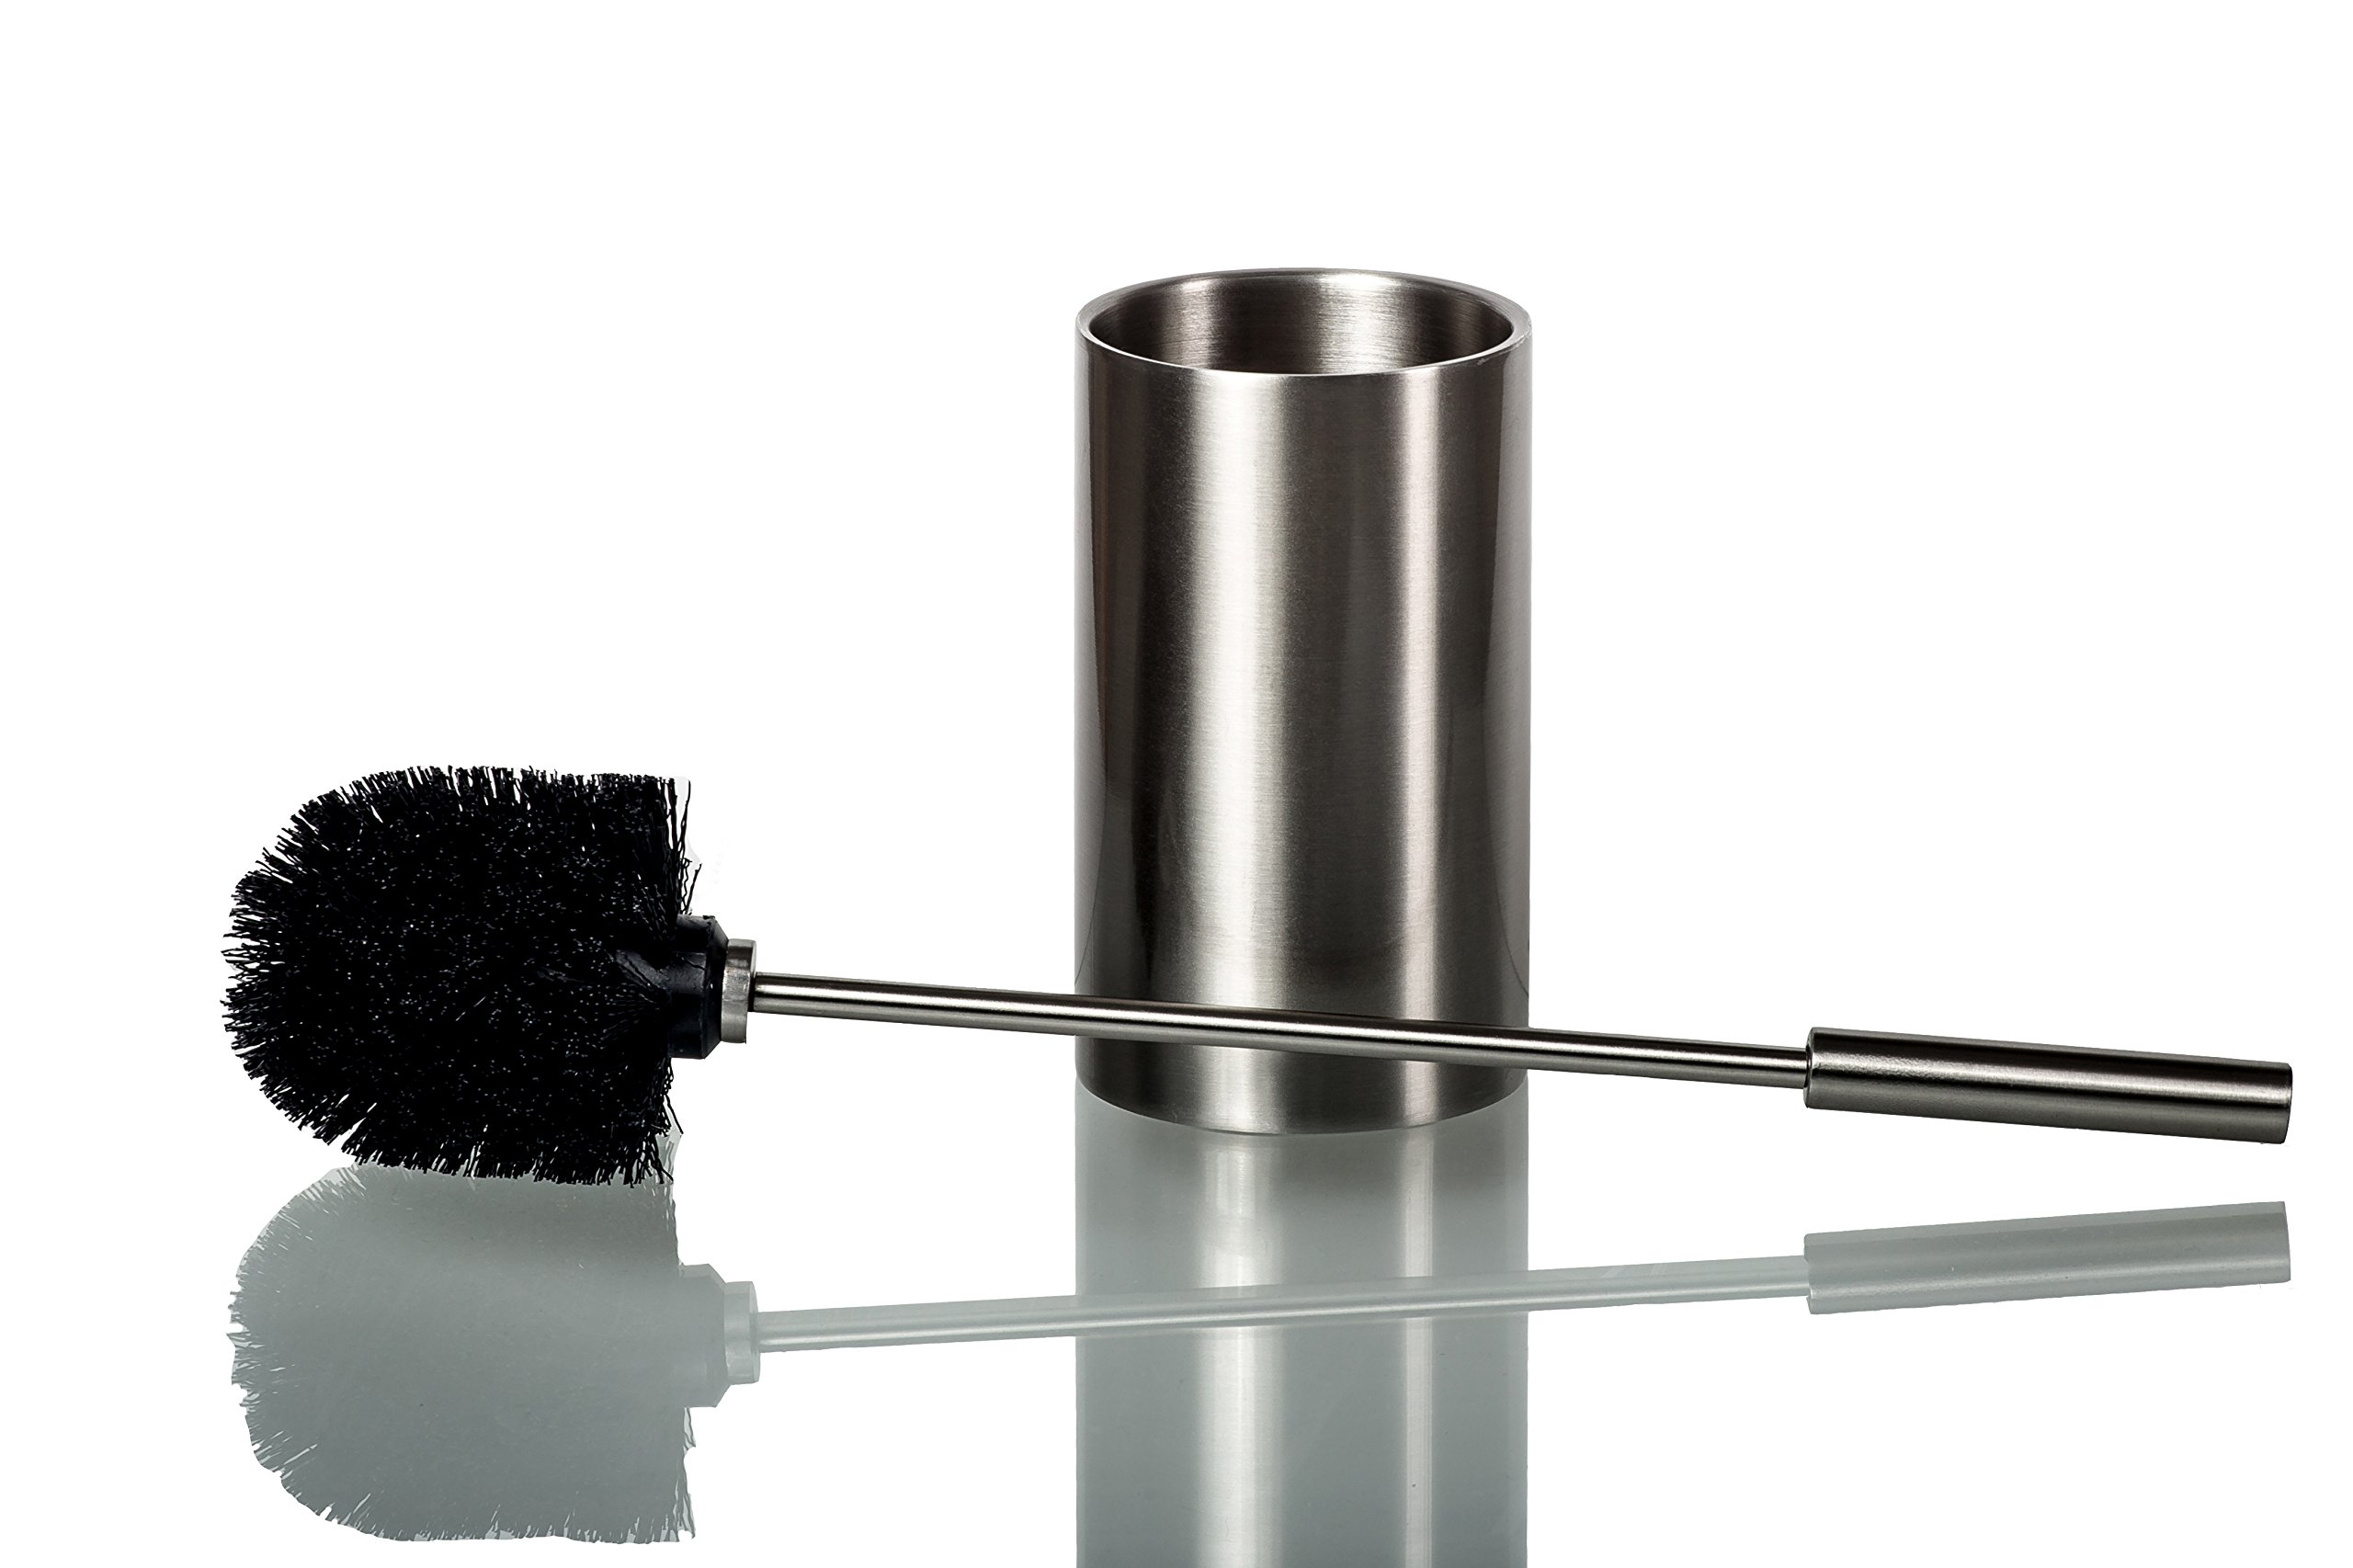 Deluxe Toilet Brush with Holder – Premium Quality Stainless Steel Toilet Brush – Elegant and Modern Design – Ergonomic and Practical Handle – Durable Brush Bristles – Hygienic Double-Wall Holder